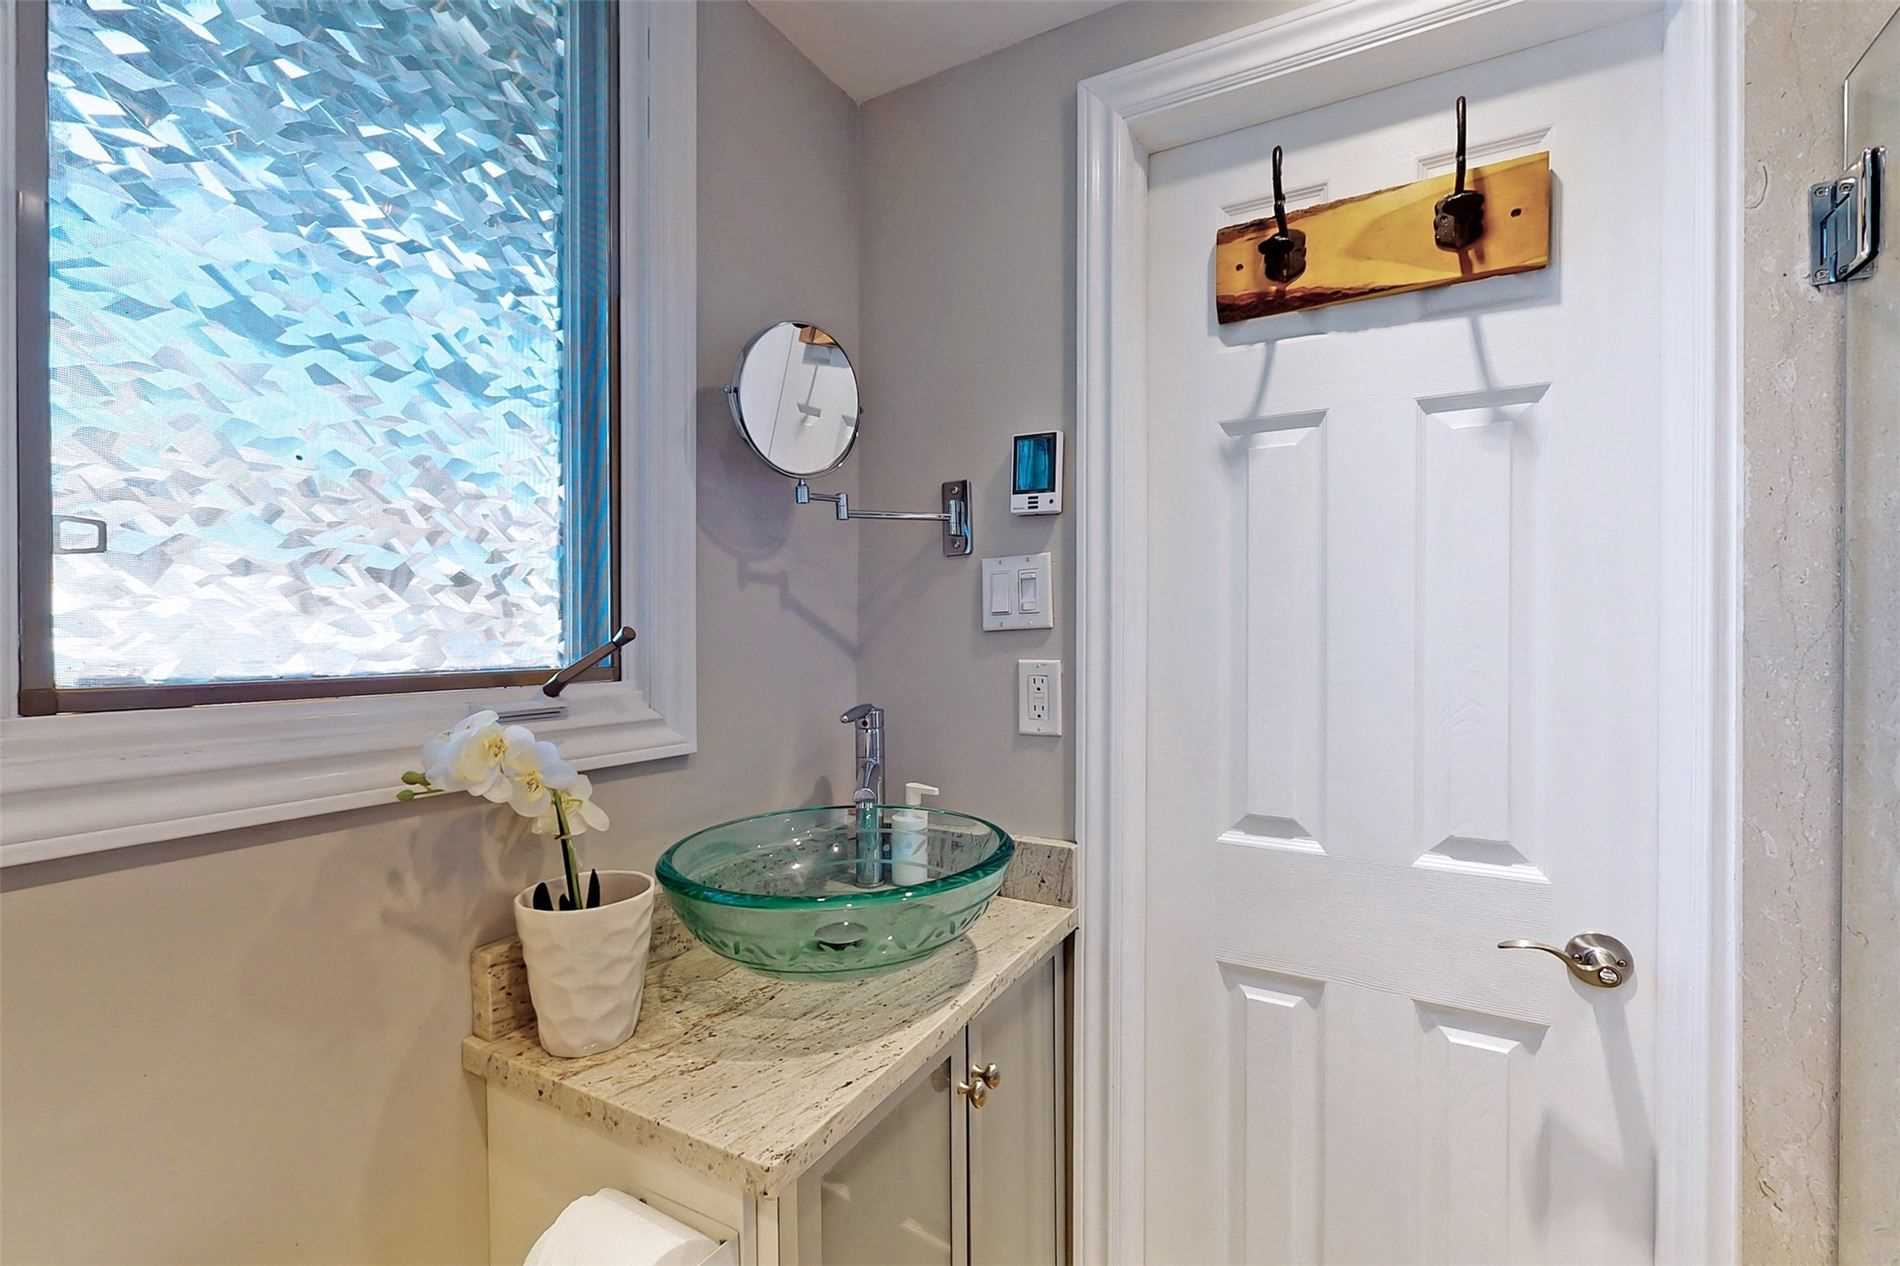 Image 39 of 40 showing inside of 3 Bedroom Condo Townhouse 3-Storey for Sale at 14 Cumberland Lane Unit# 7, Ajax L1S7K4